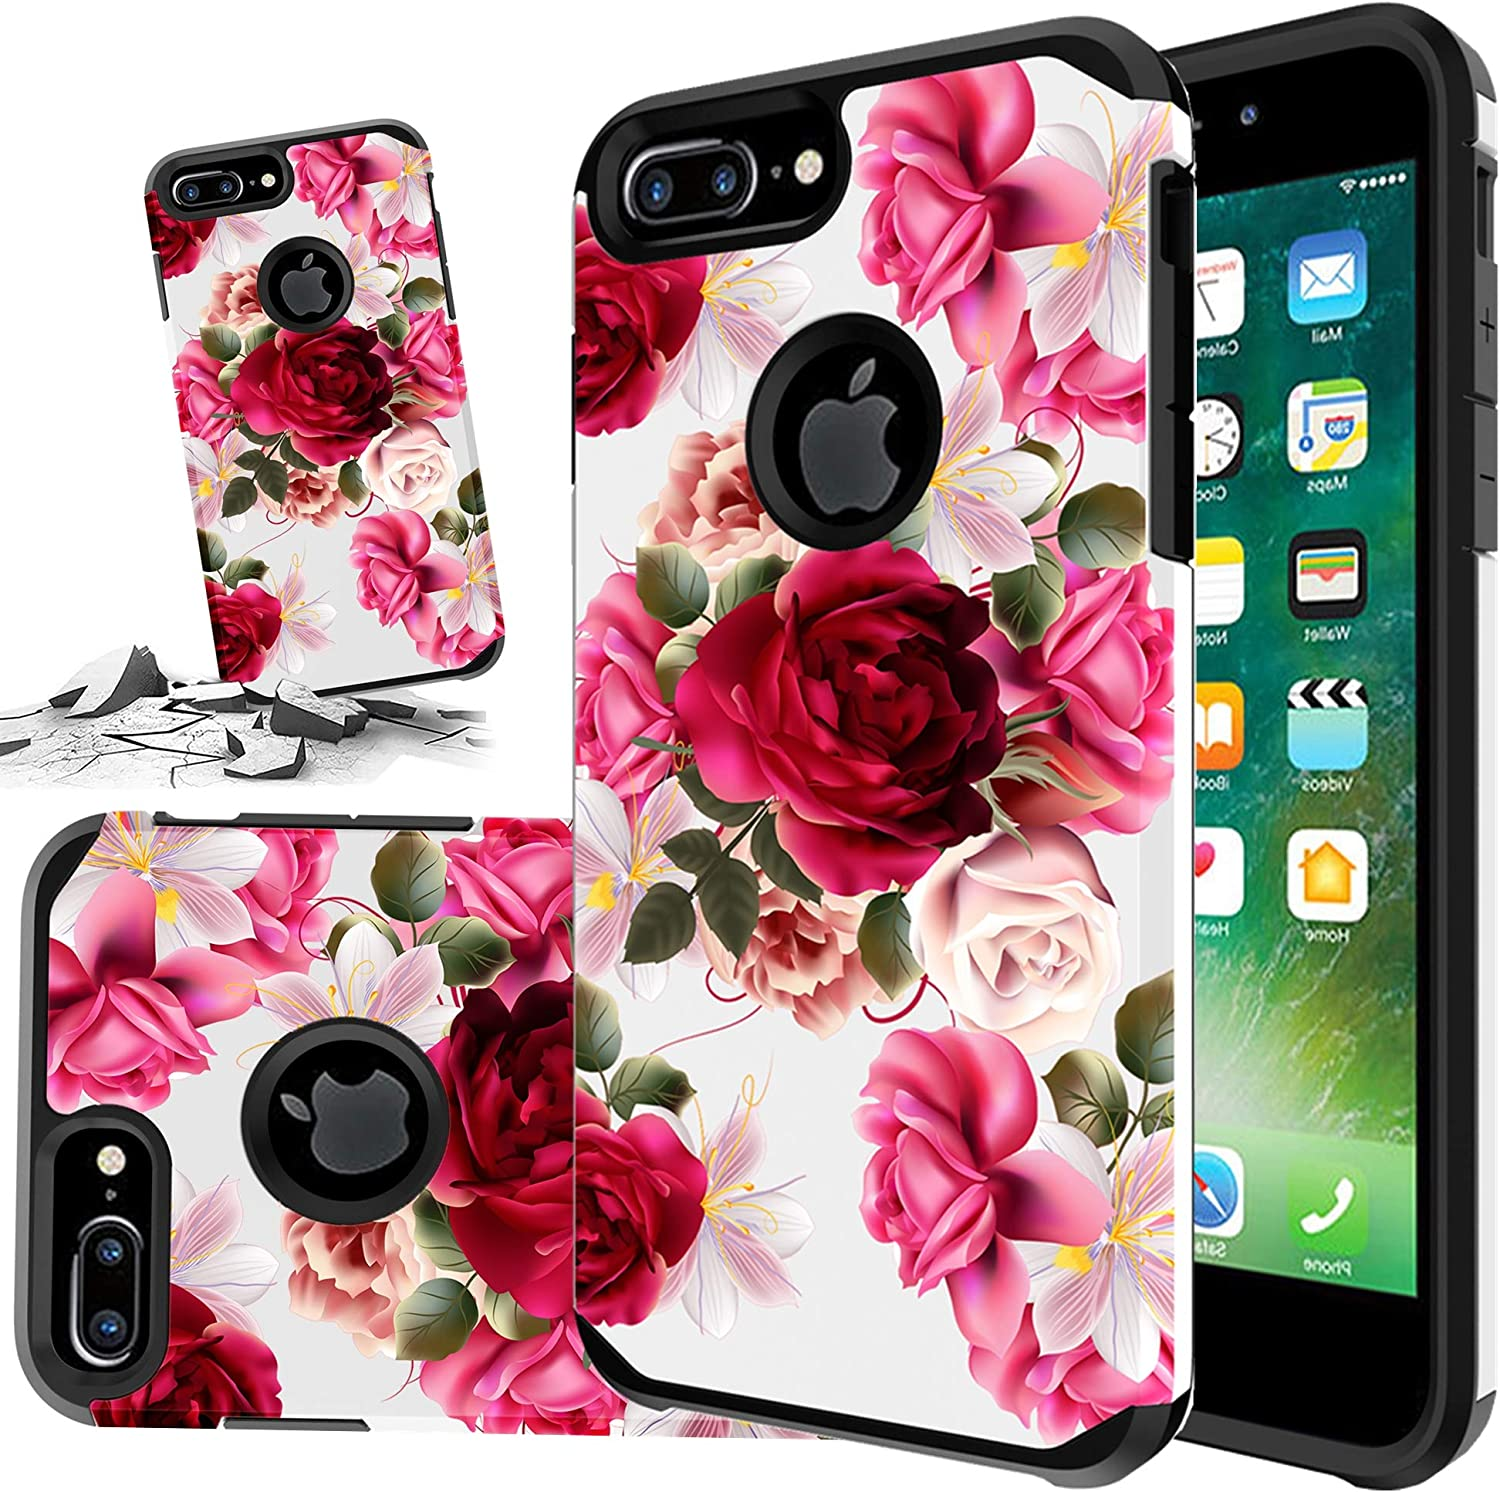 Red Floral Phone Case Compatible for [ iPhone 6 Plus & iPhone 6s Plus ] Storm Buy [Shock Absorption] Dual Layer Heavy Duty Pink Rose Protective Girl Women Cover (Red- IP6/6S Plus-RR)